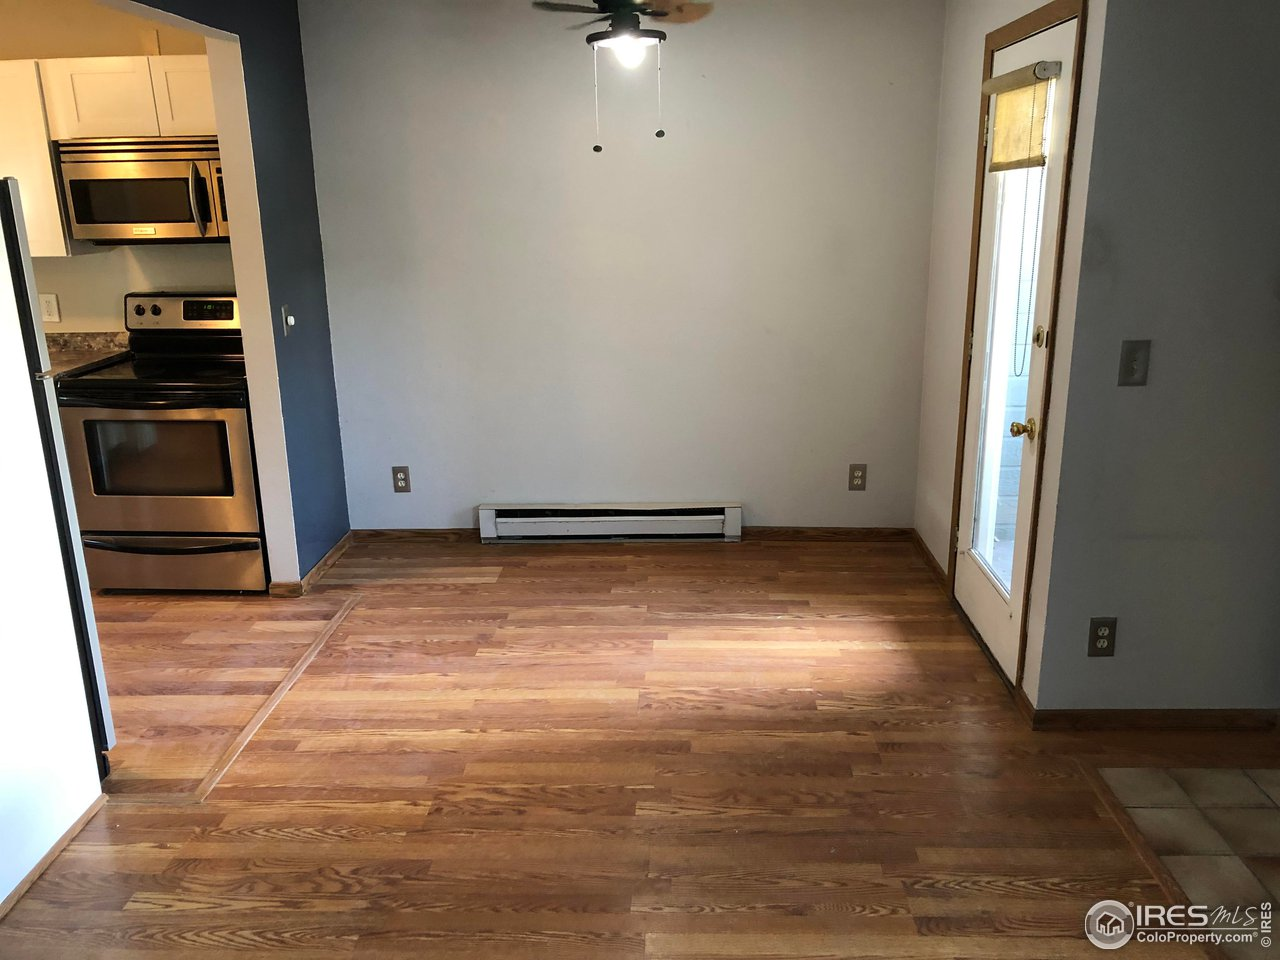 Living Room Off of Kitchen